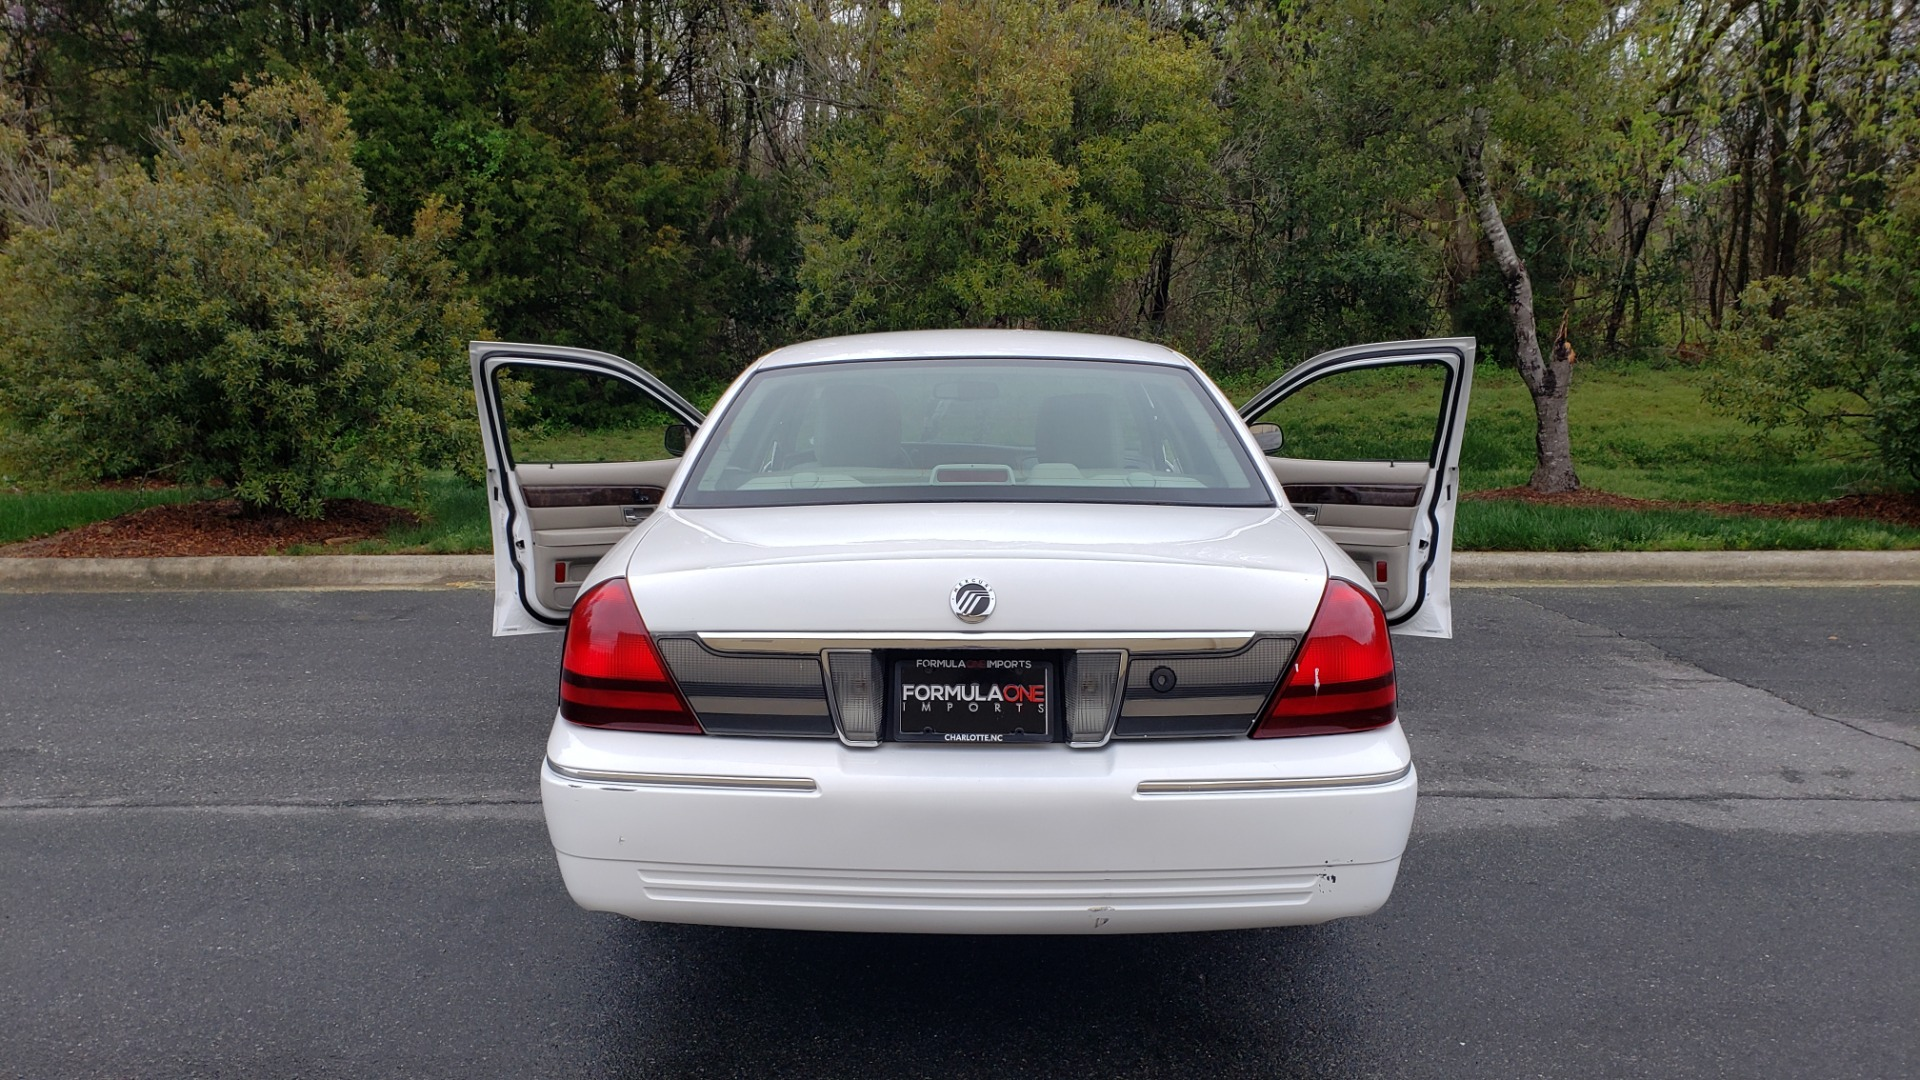 Used 2011 Mercury GRAND MARQUIS LS / 4.6L V8 / 4-SPD AUTO / KEYLESS ENTRY / LOW MILES for sale Sold at Formula Imports in Charlotte NC 28227 24